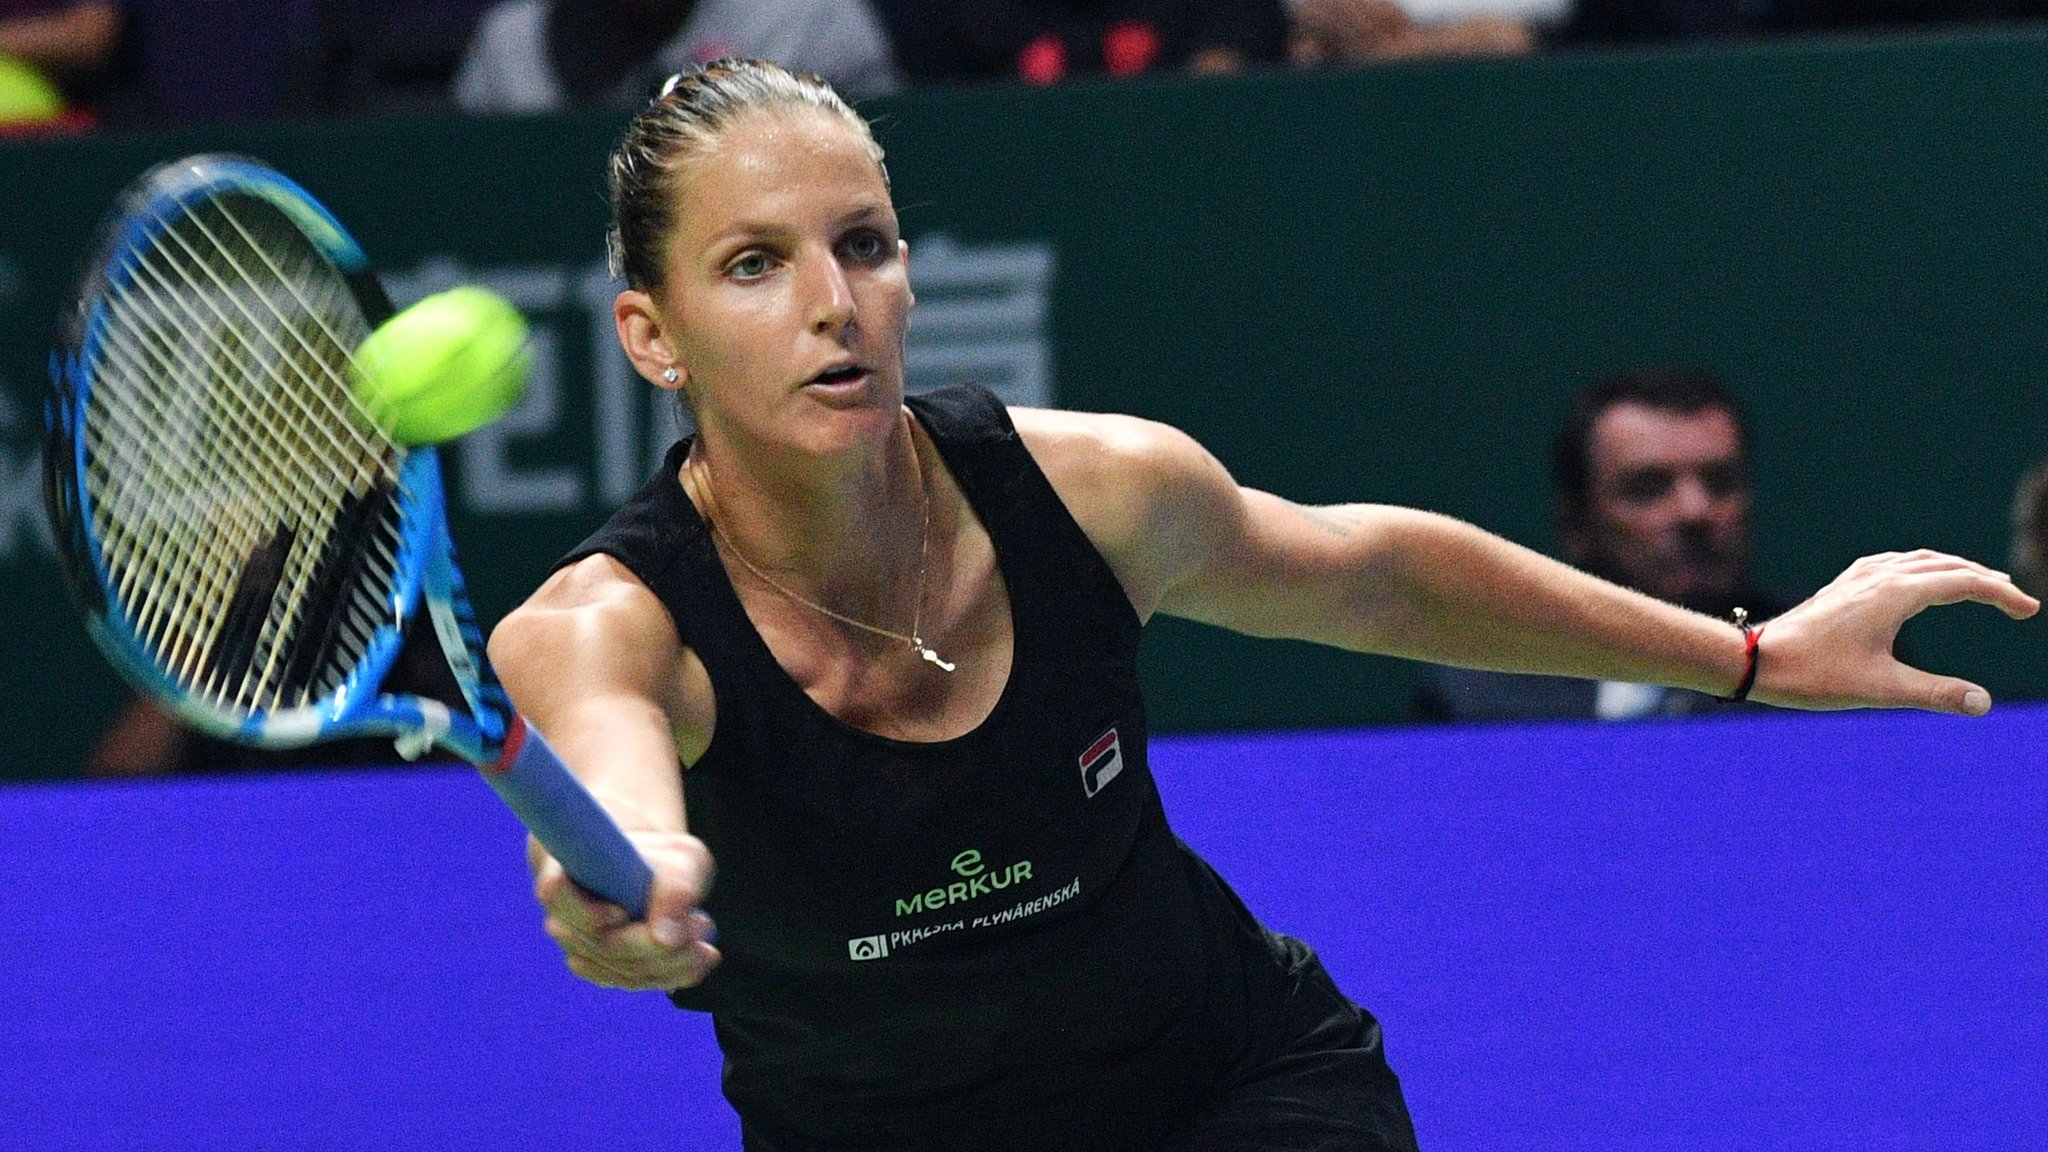 Pliskova beats defending champion Wozniacki at WTA Finals